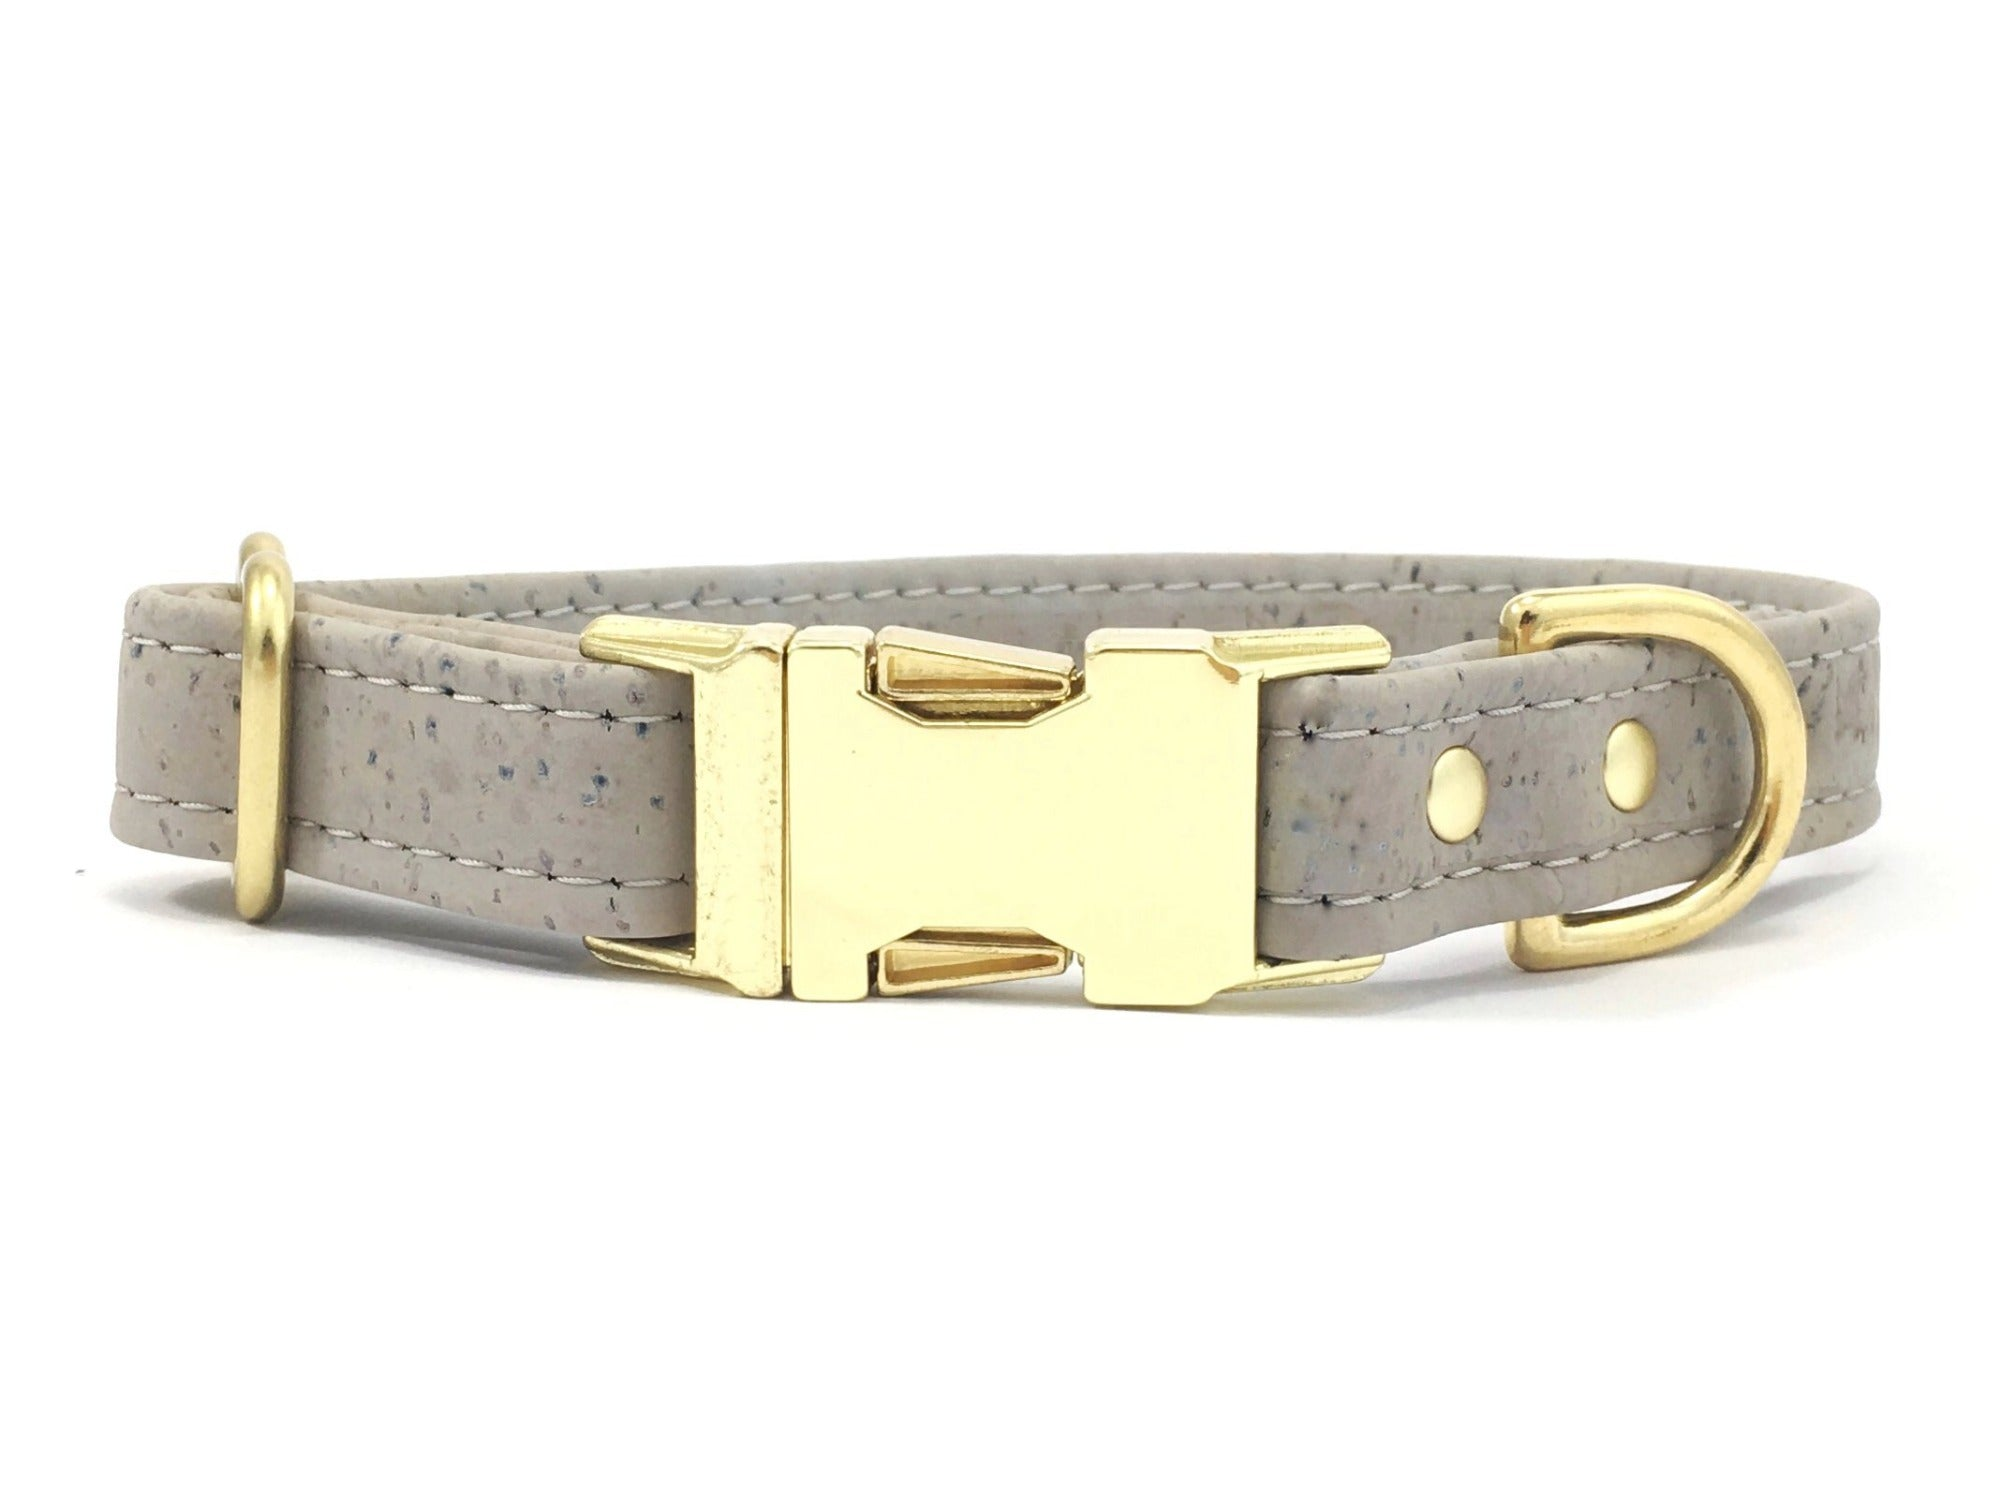 Grey dog collar in vegan cork leather and luxury brass quick release buckle